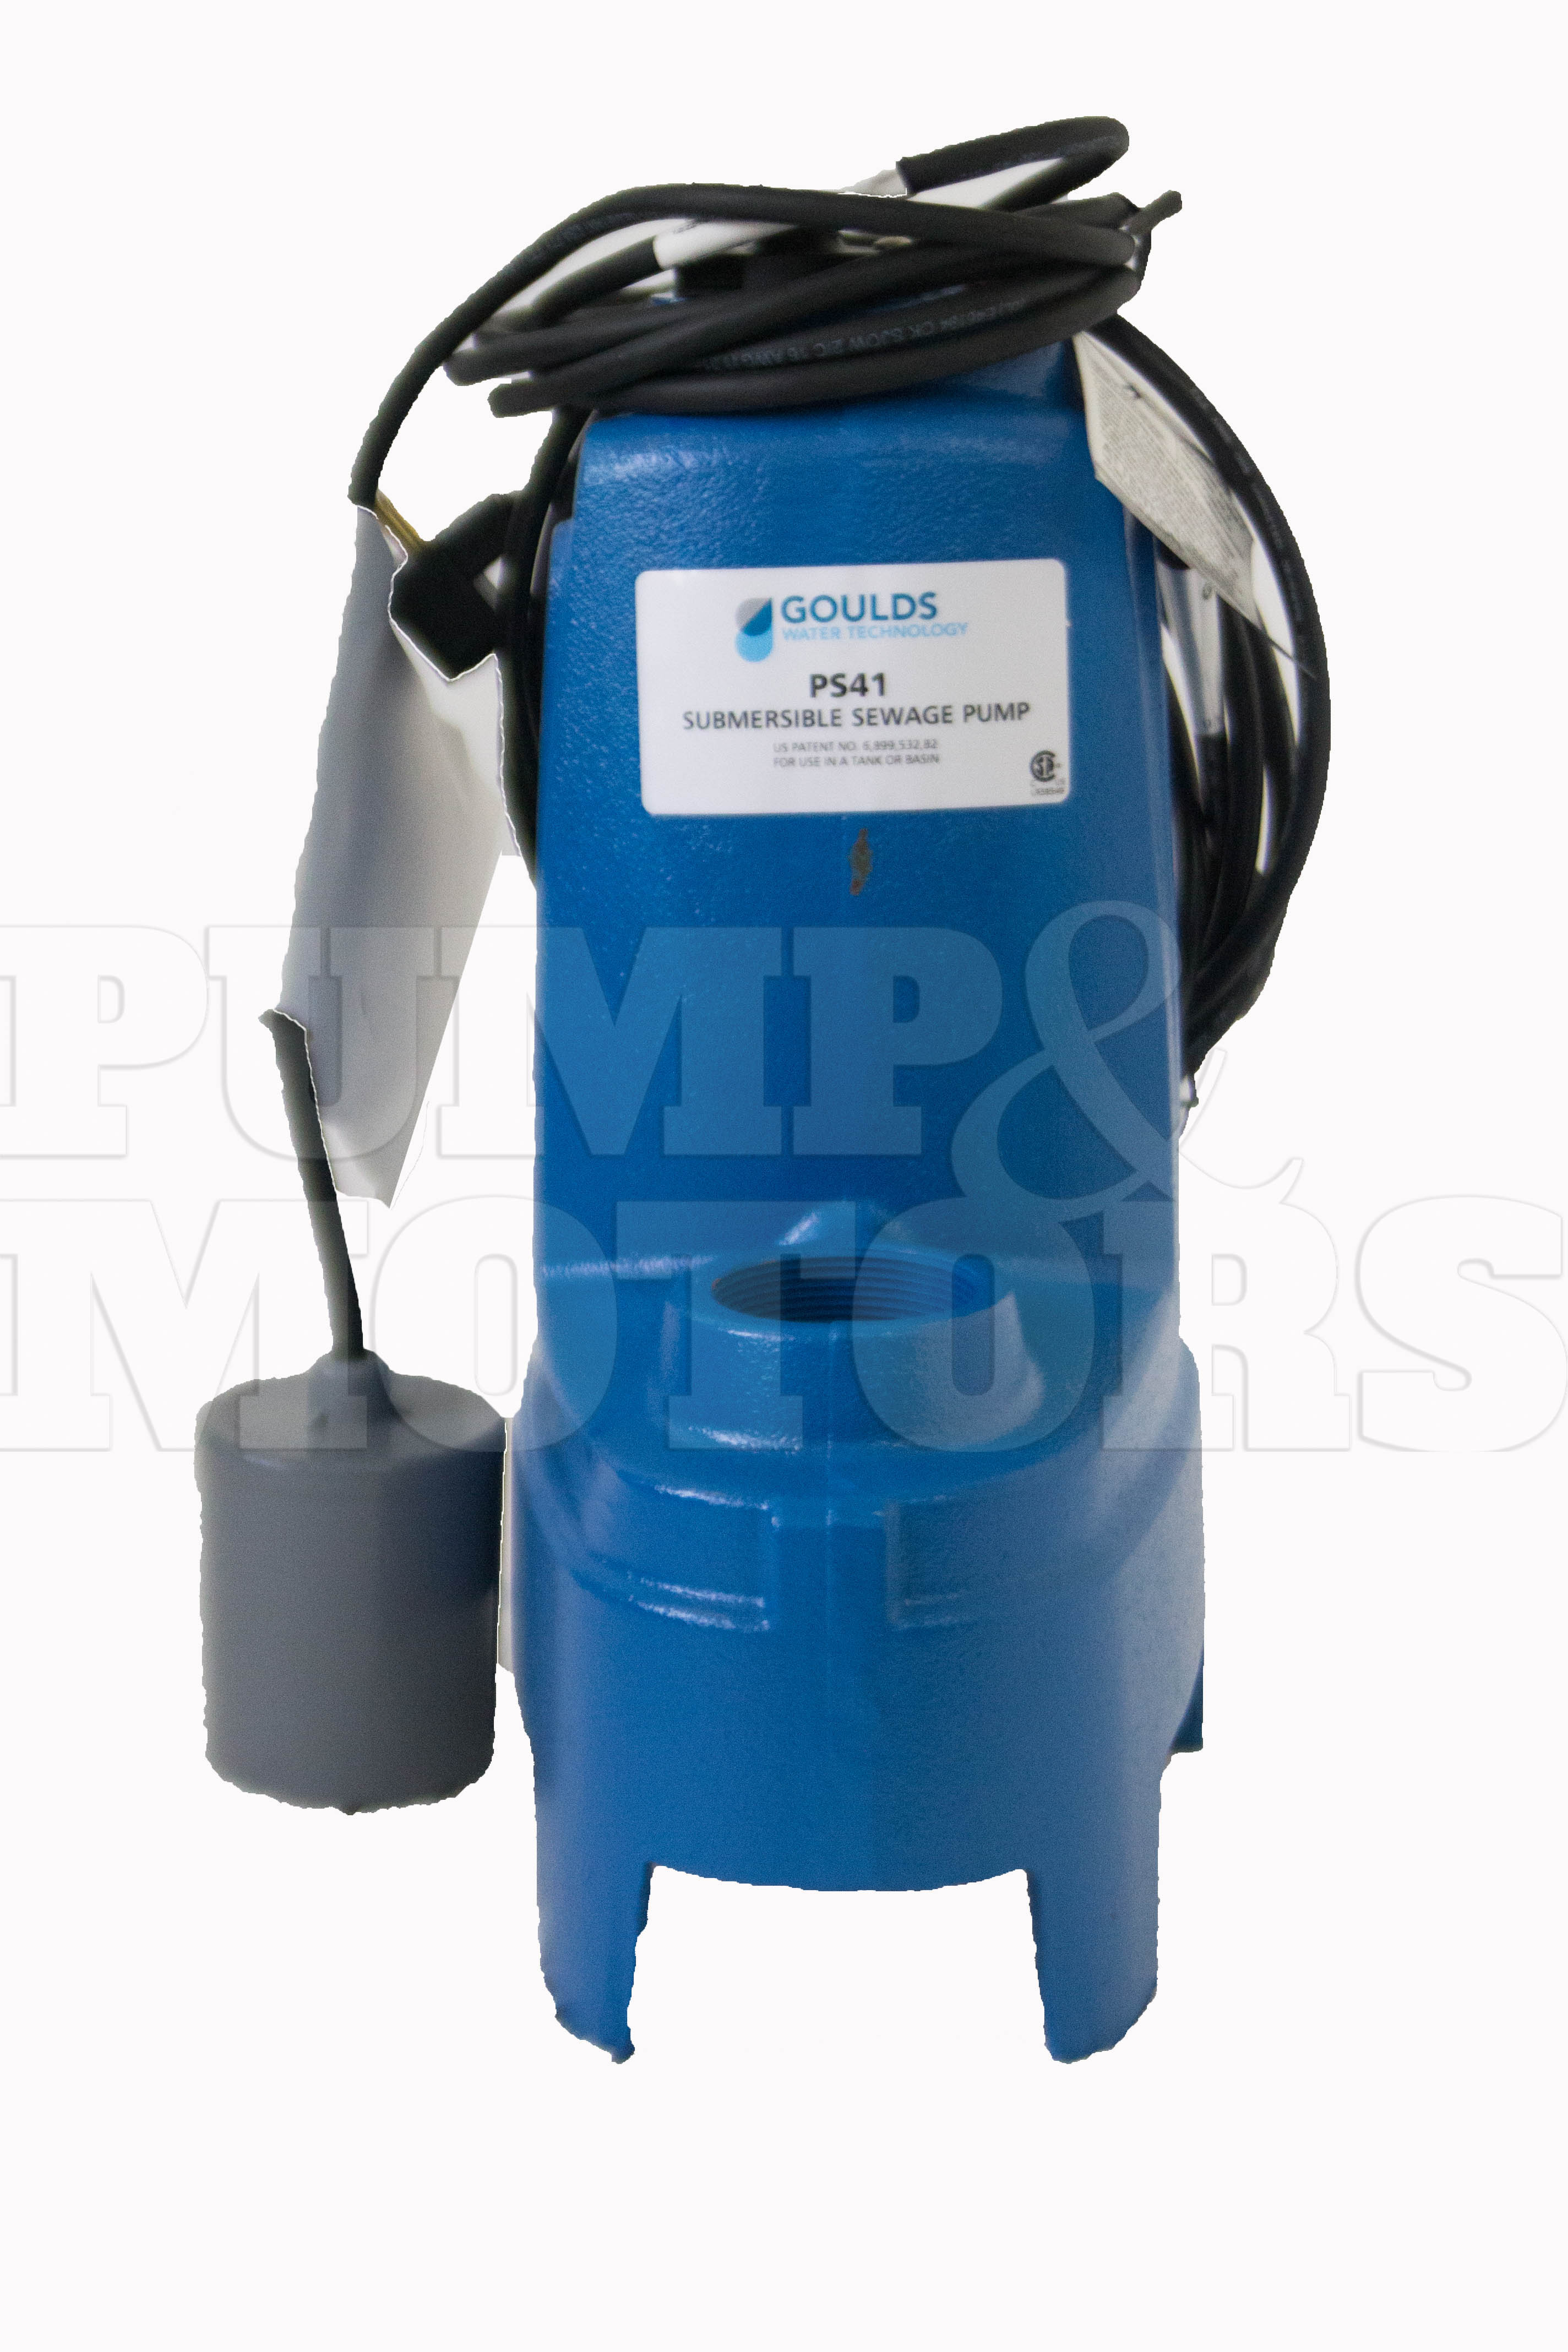 Goulds PS42P1F 4/10HP Submersible Sewage Pump 230V Auto